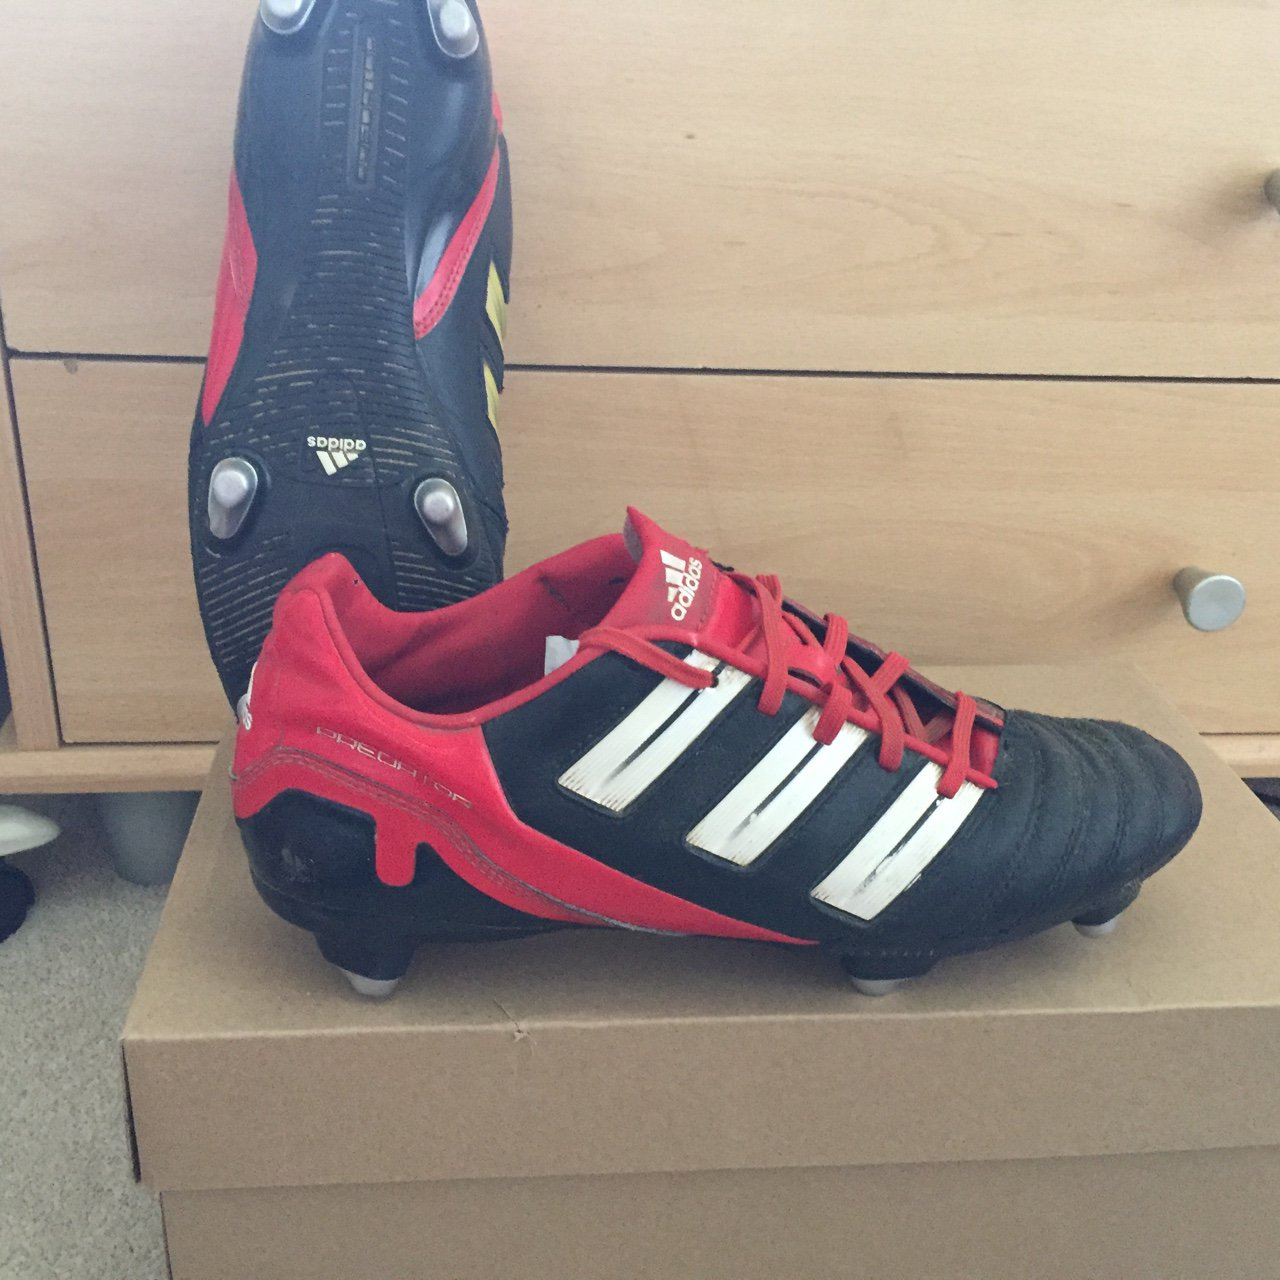 promo code c64d3 aecac Adidas Predator (Adi Power) in Size 8. These are perfect for - Depop